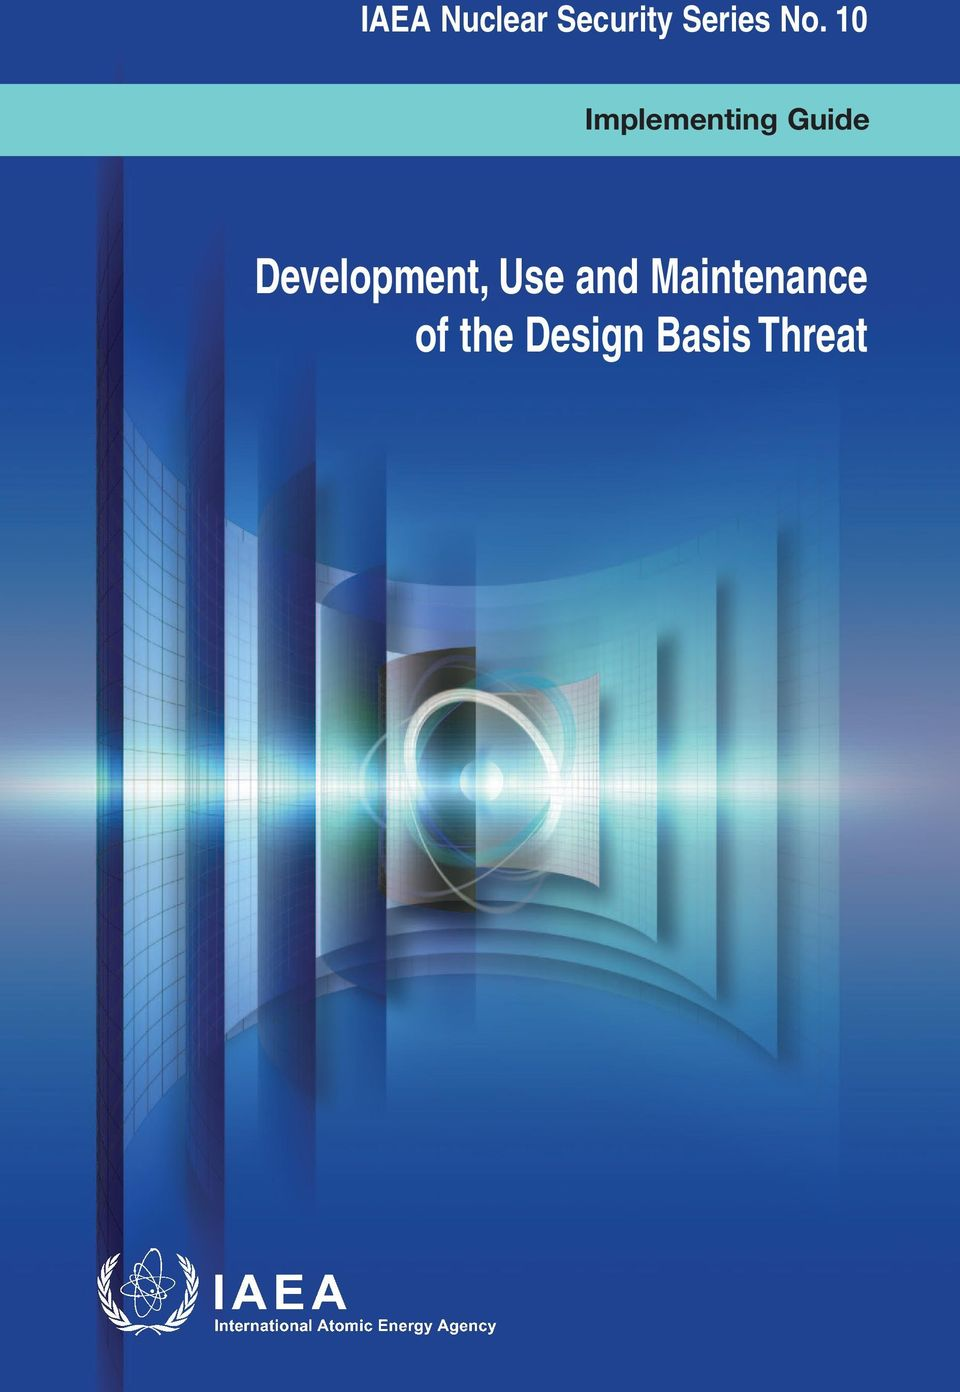 Development, Use and